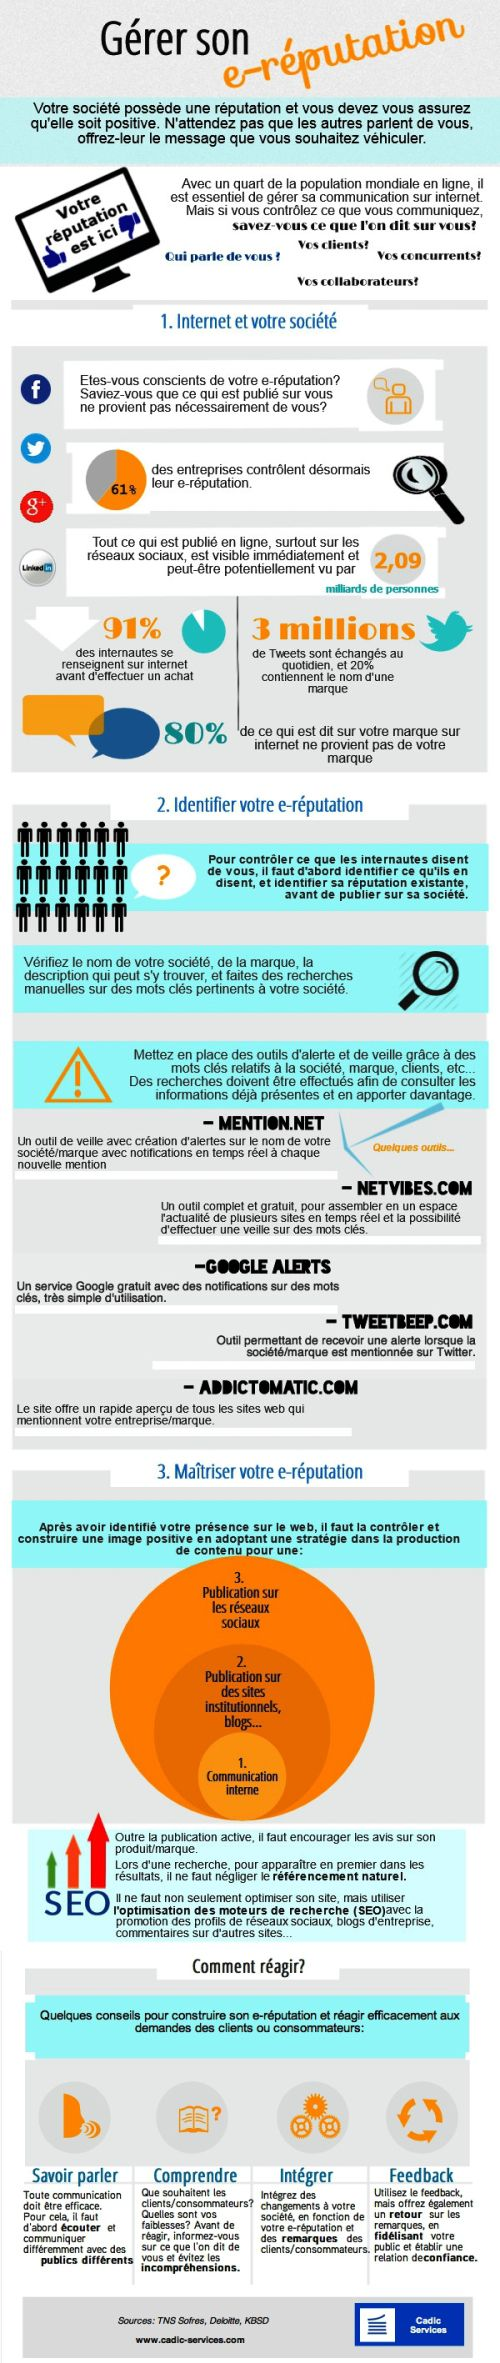 209 best Infographie images on Pinterest | Info graphics ...